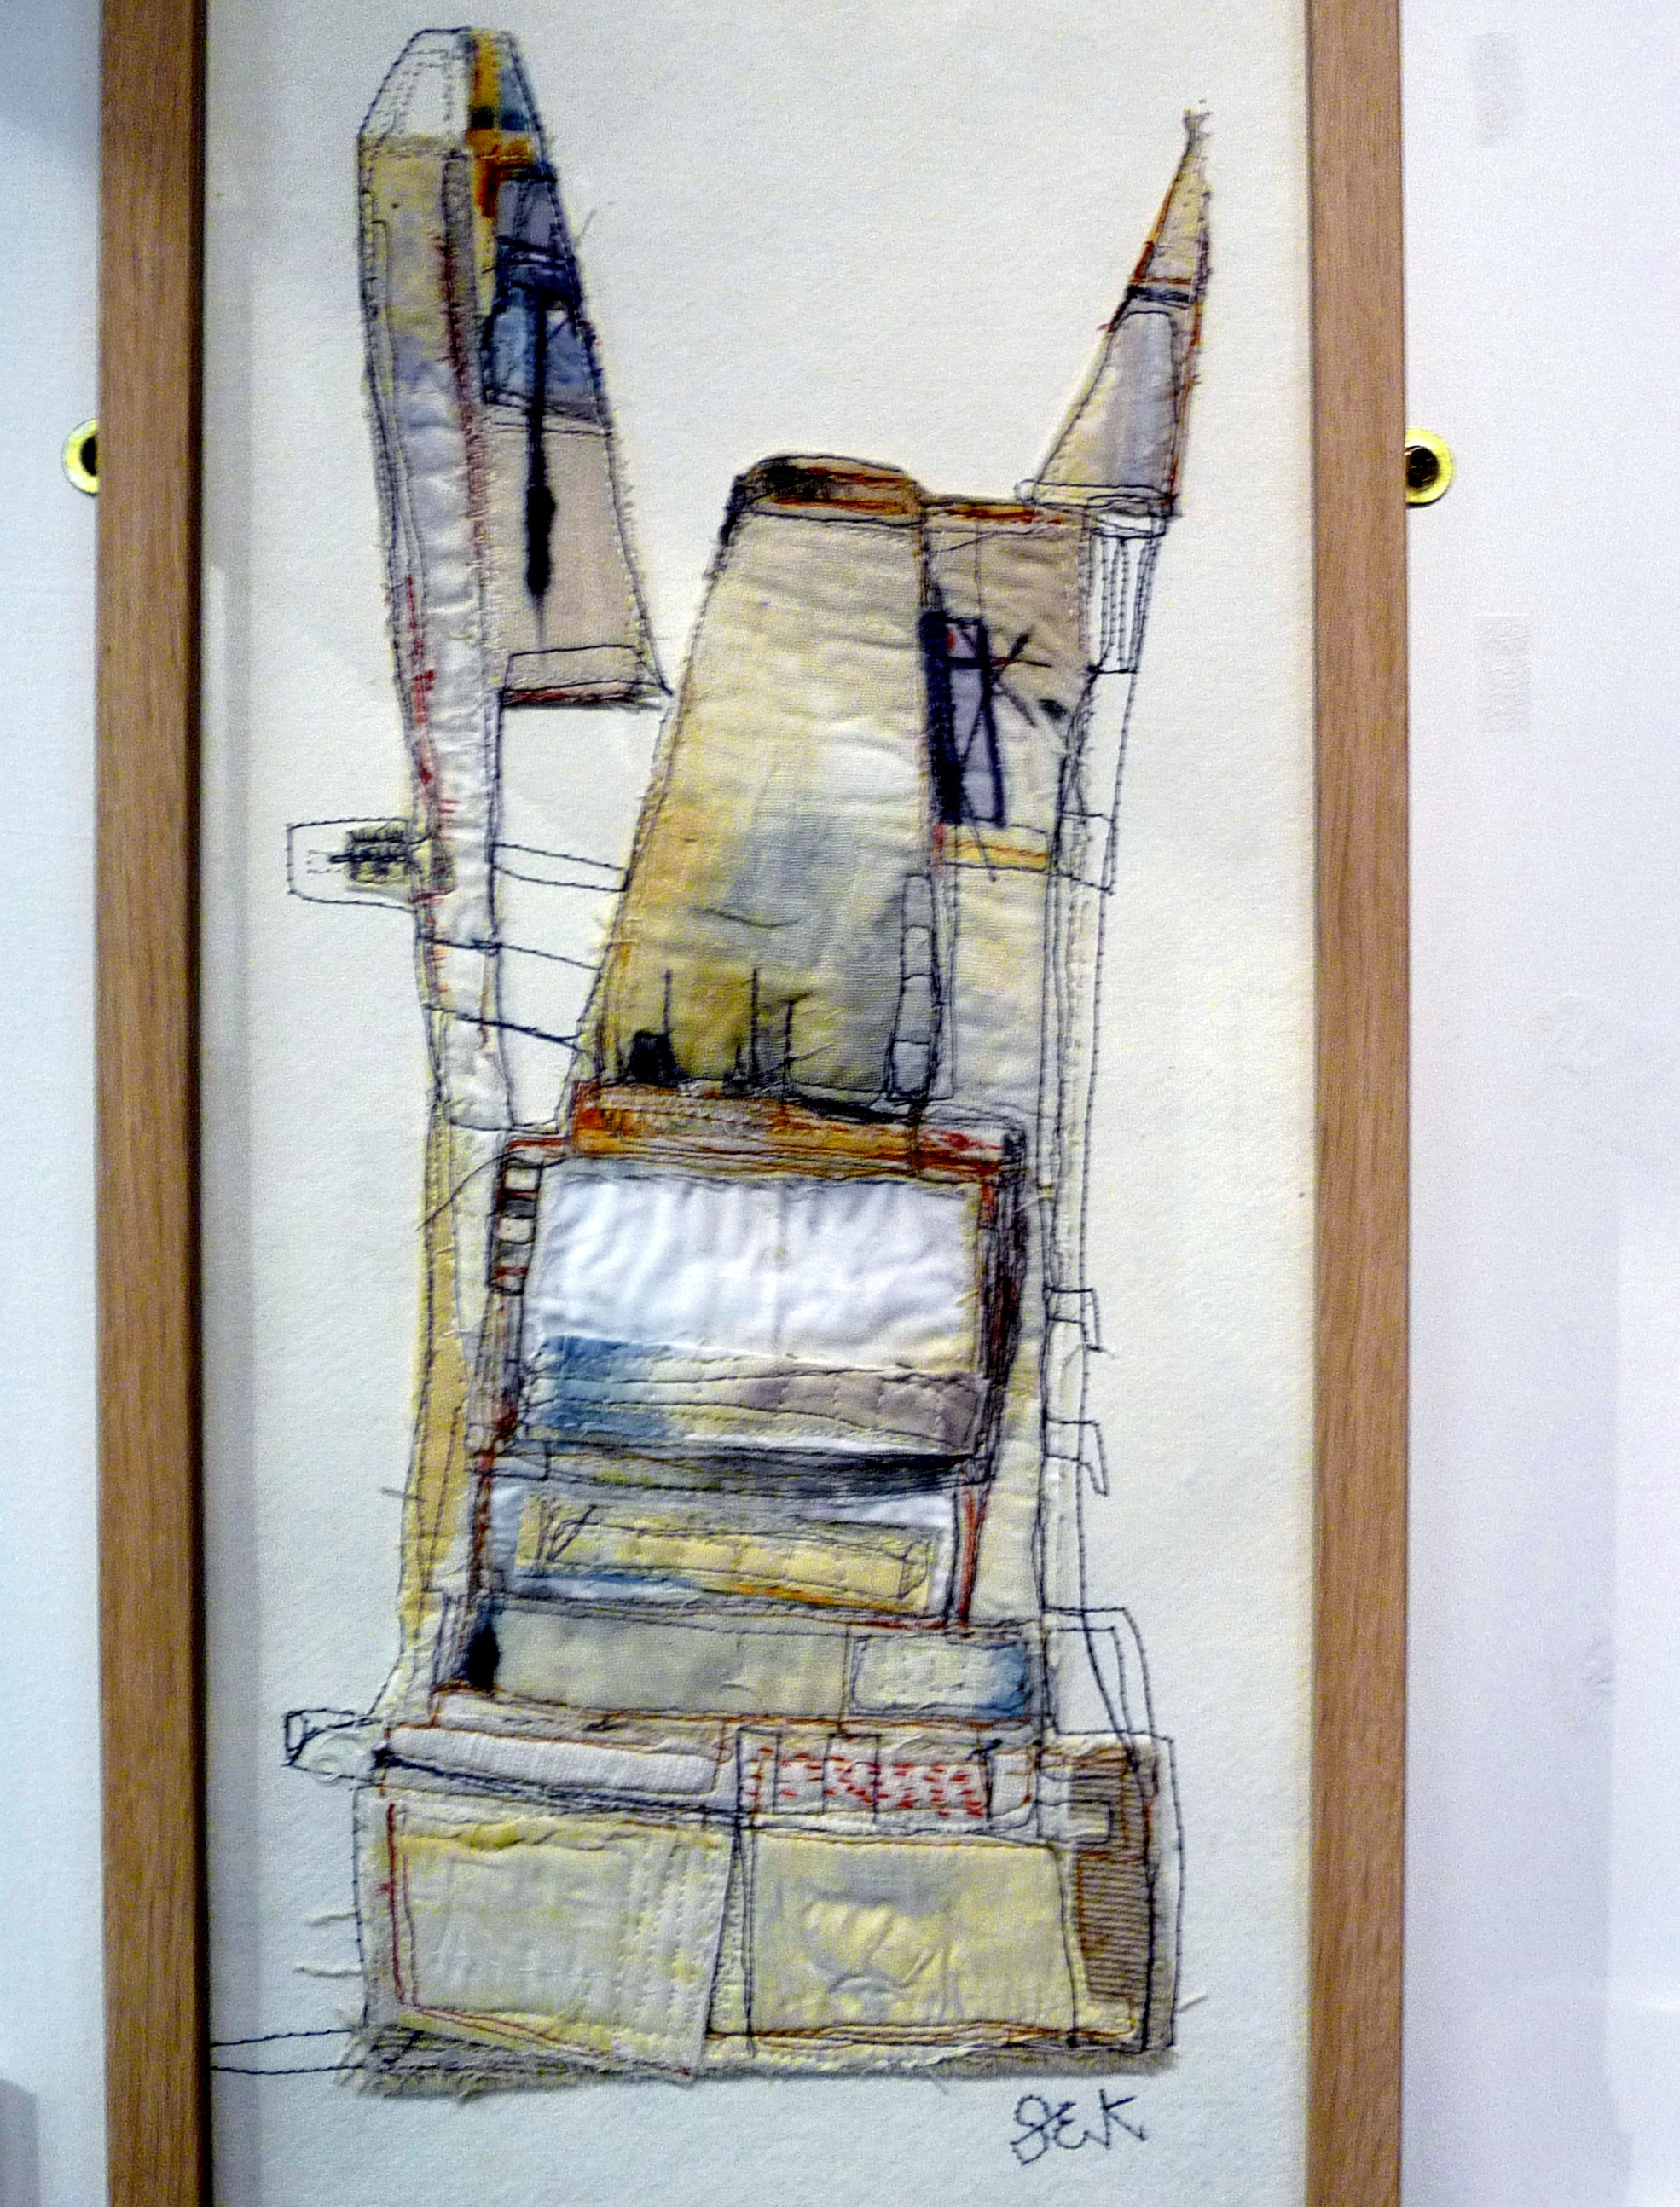 PEDESTAL by Steph Estall-Knight of FLOWN group